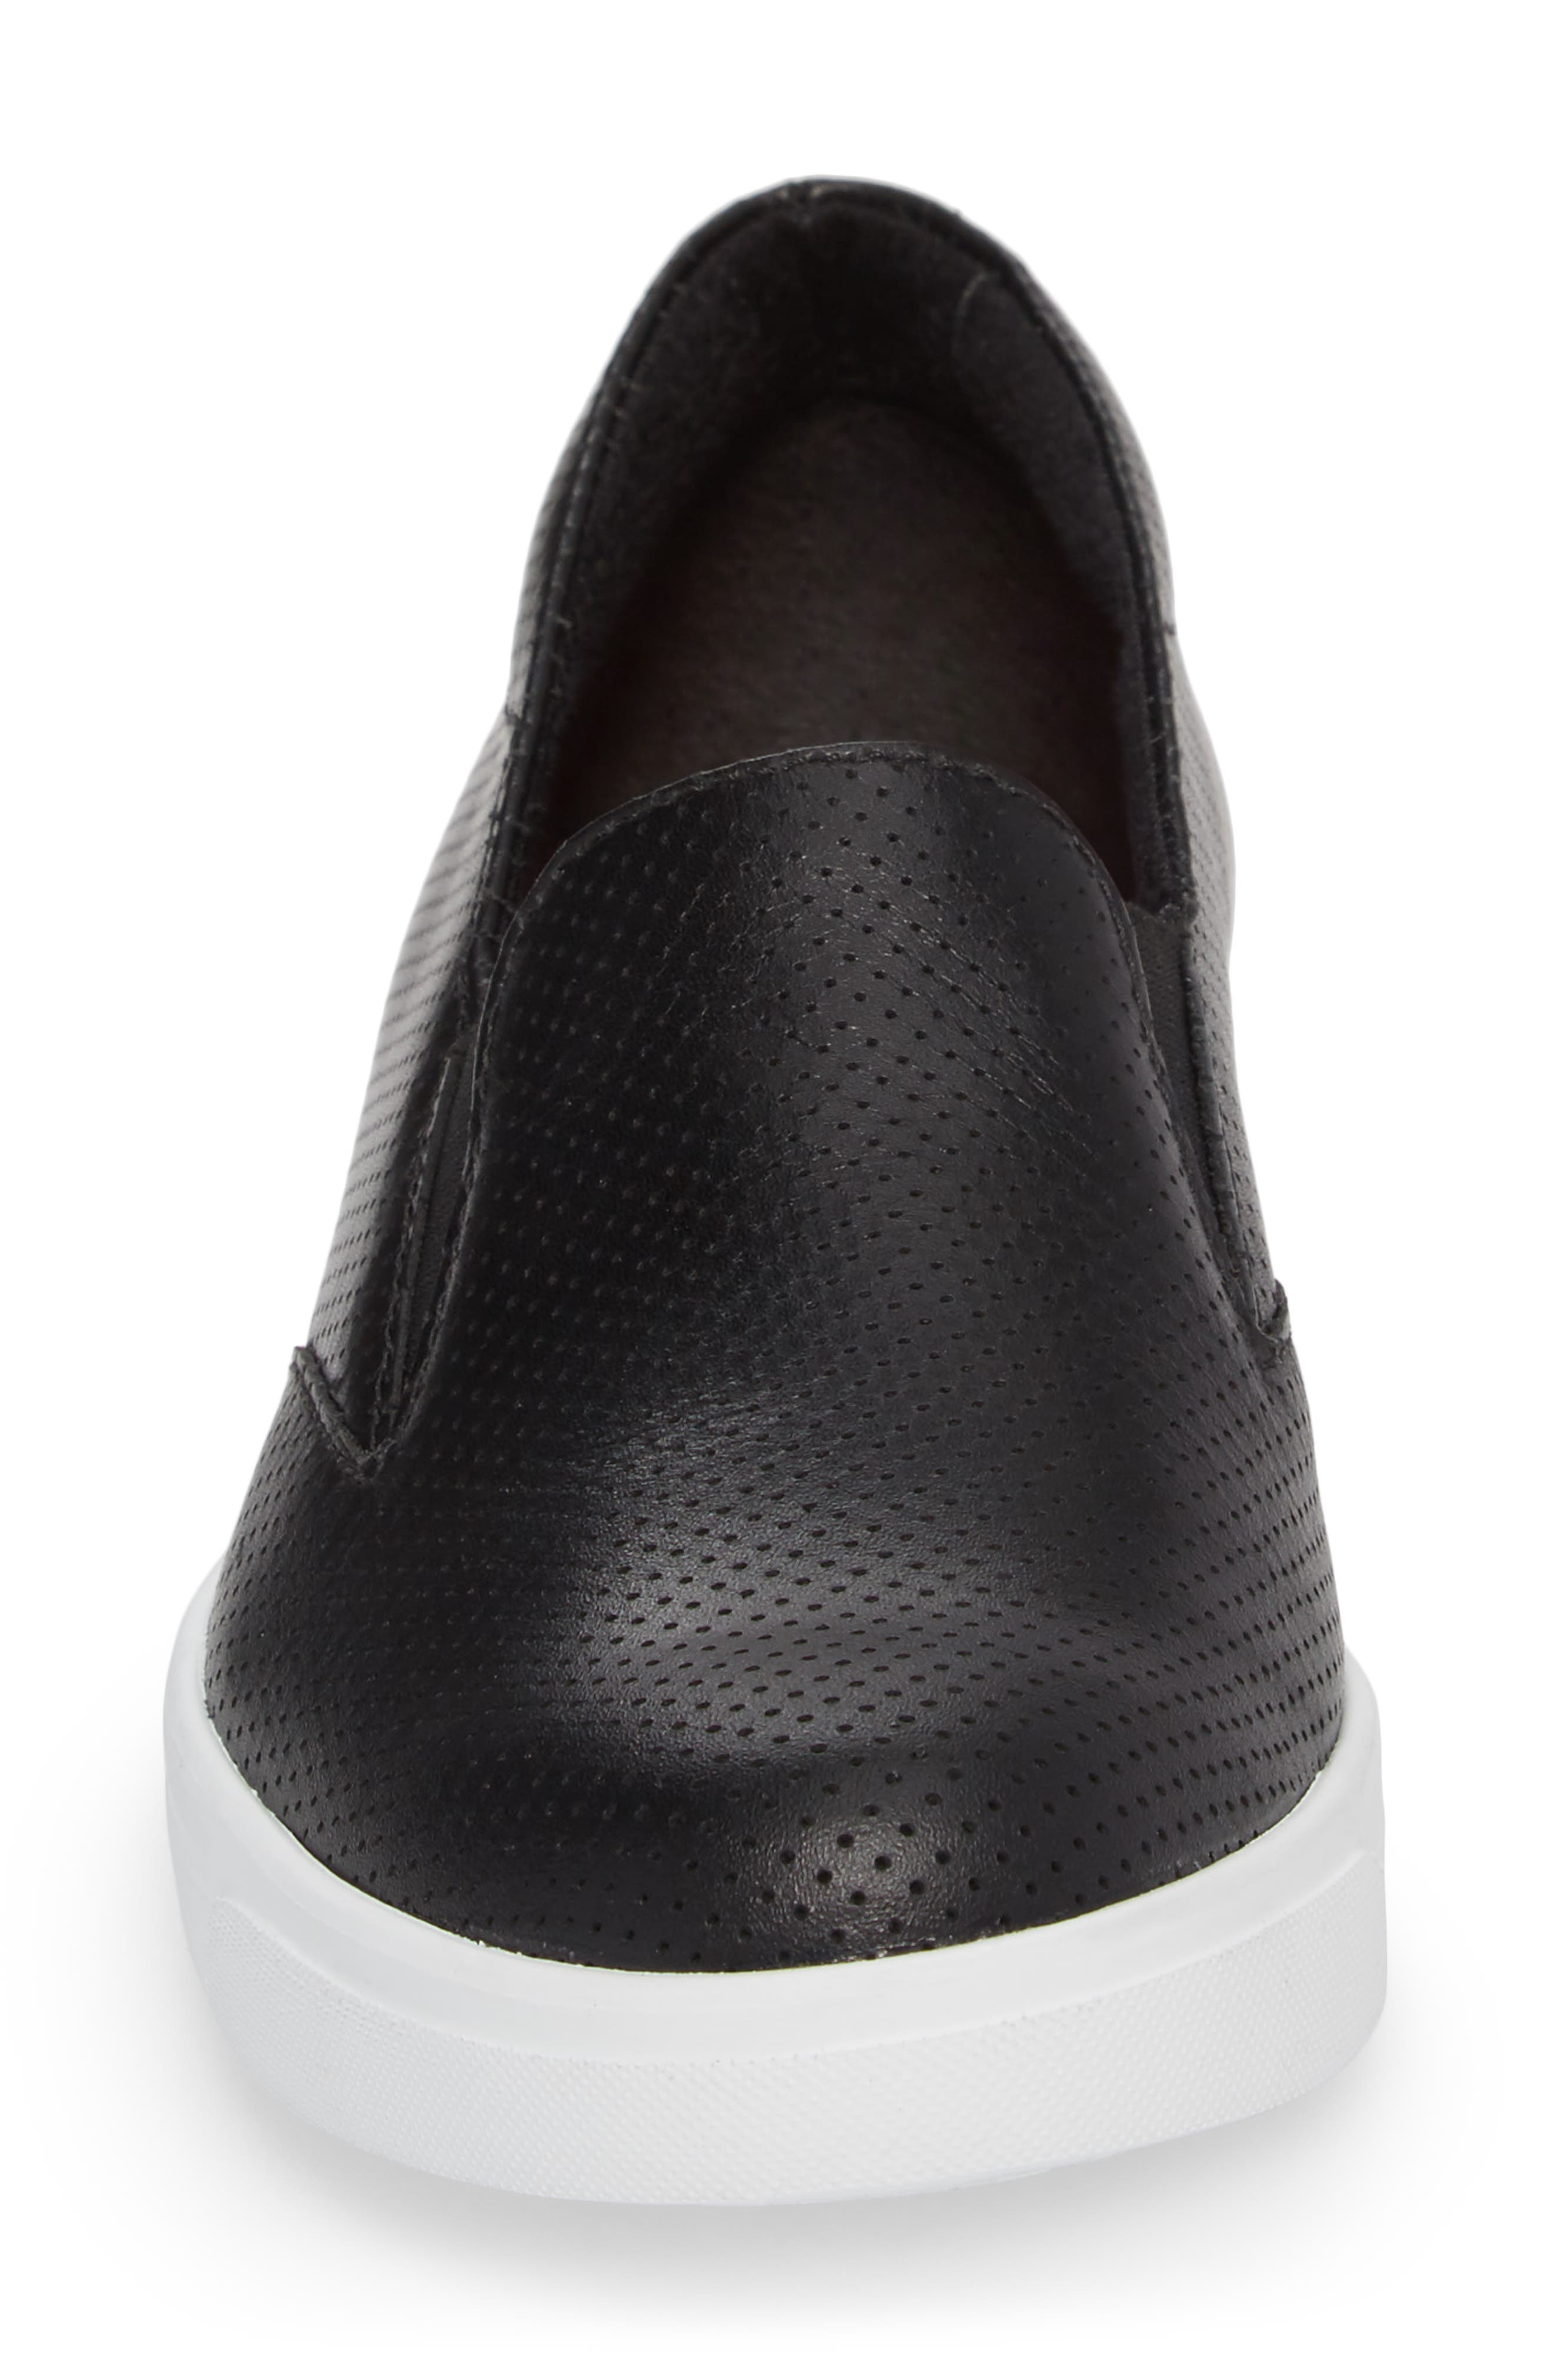 MUNRO, Lulu Slip-On Sneaker, Alternate thumbnail 4, color, 002